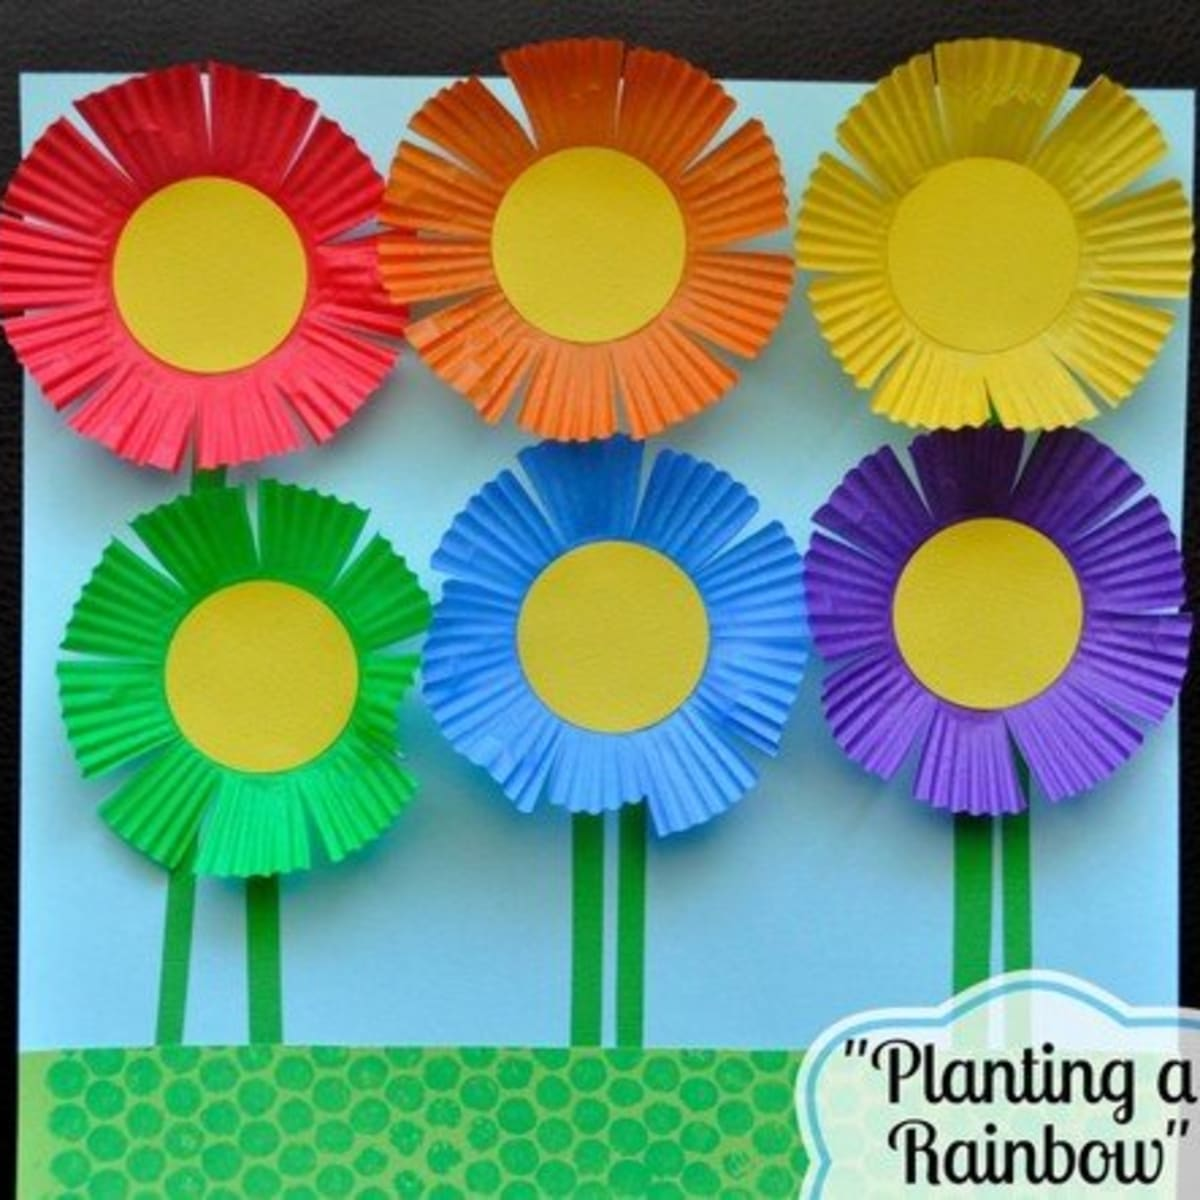 44 Fun And Easy Craft Ideas For Little Kids Feltmagnet Crafts